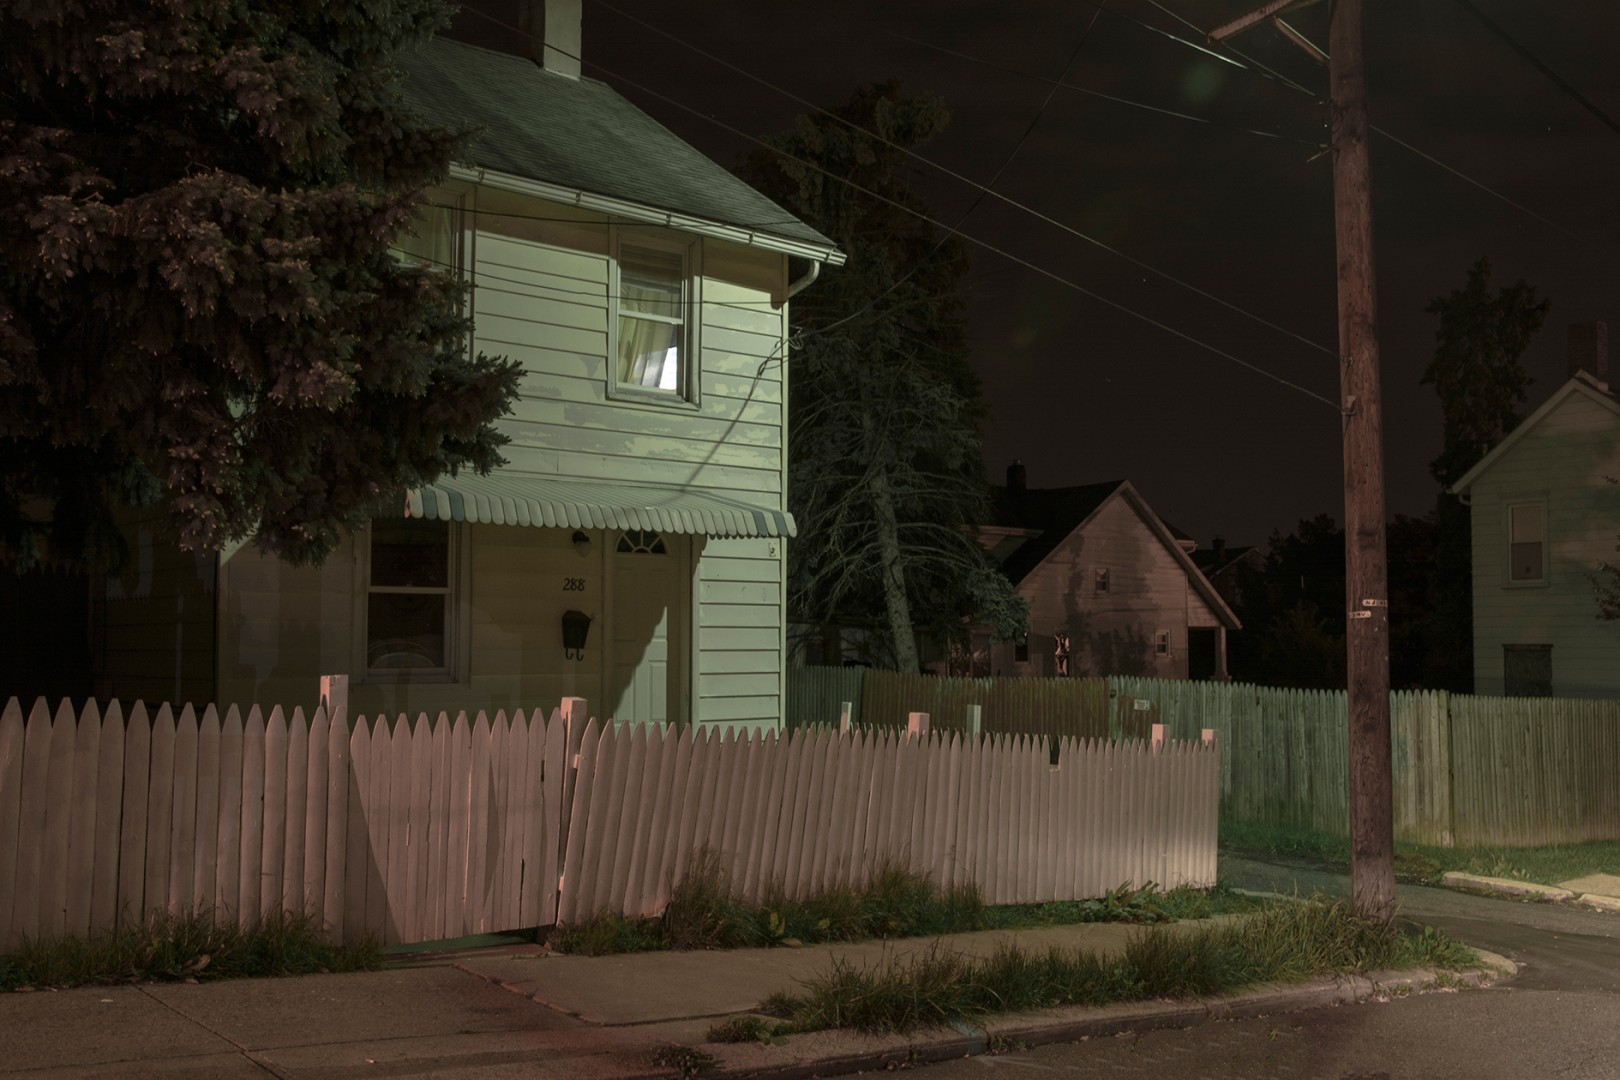 Real title is I Want an Yellow House with a White Picket Fence